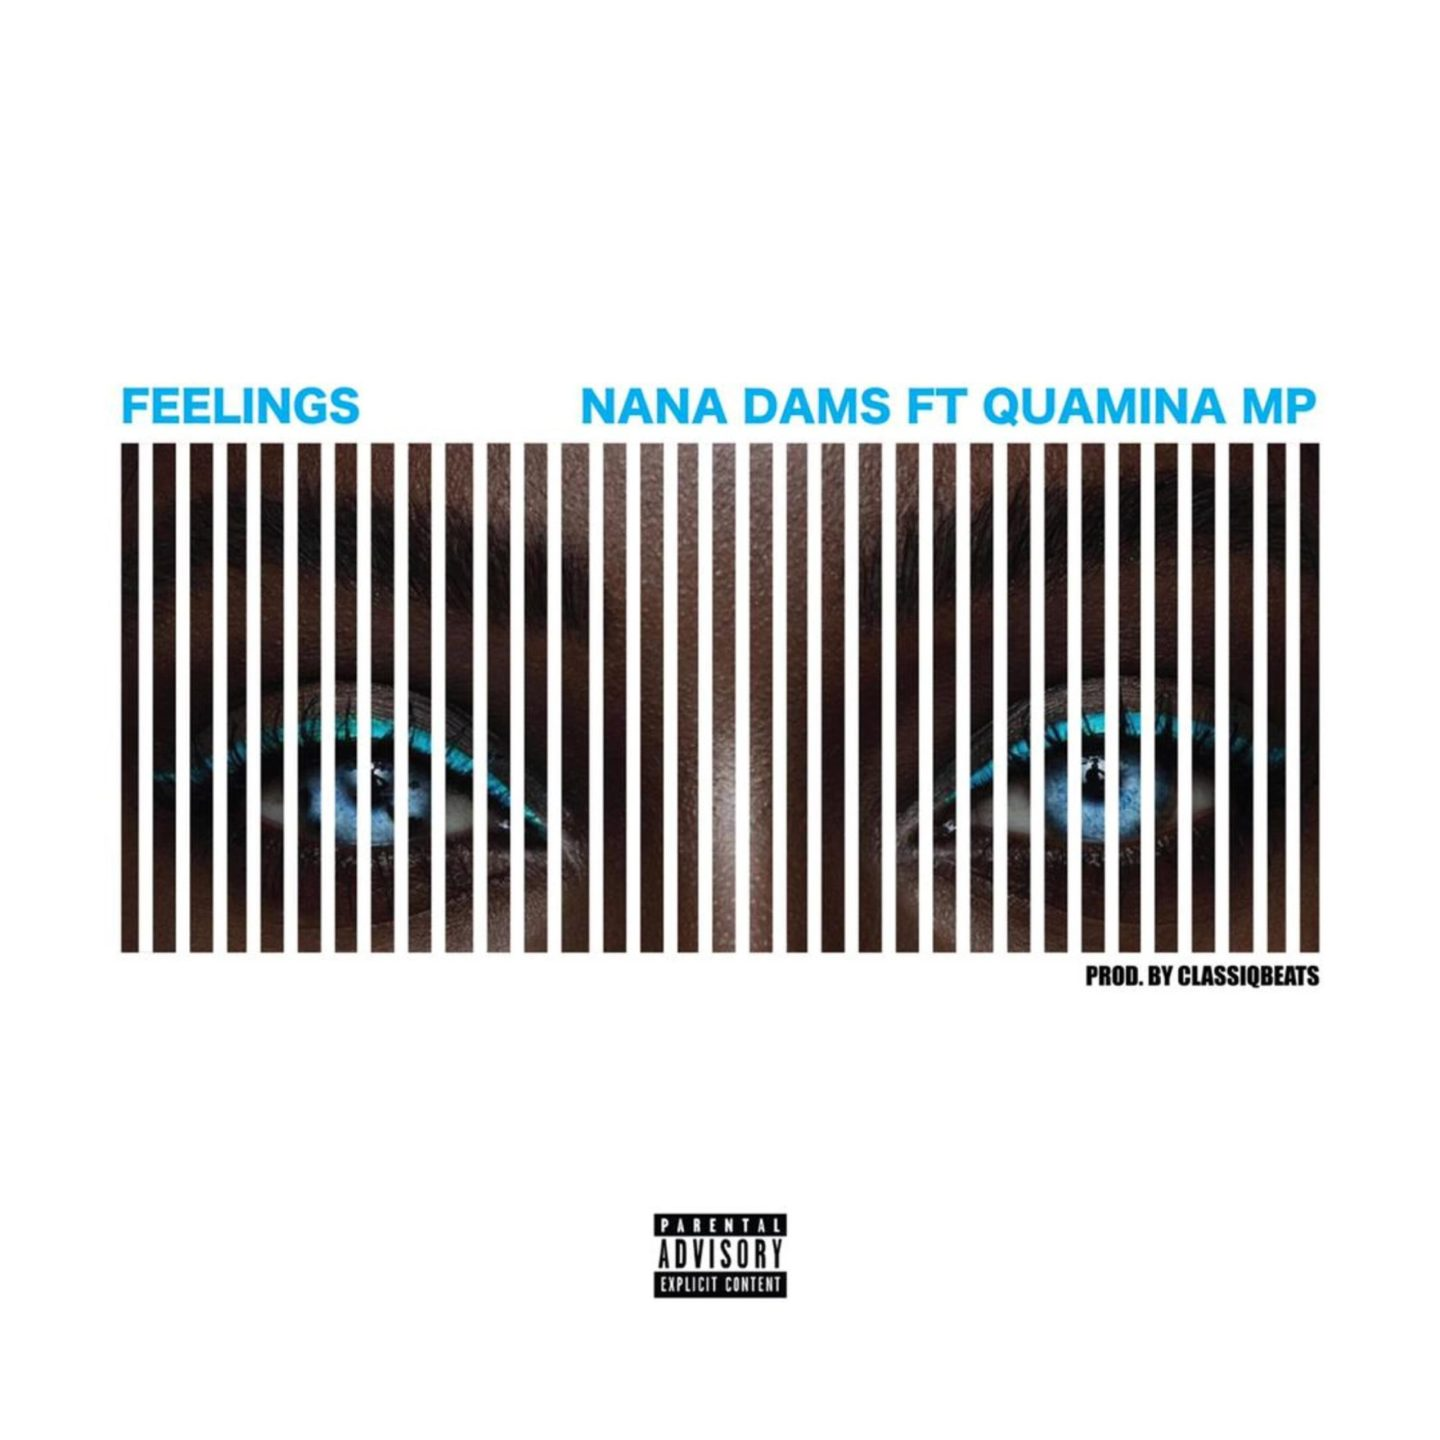 Nana Dams - 'Feelings' feat. Quamina MP